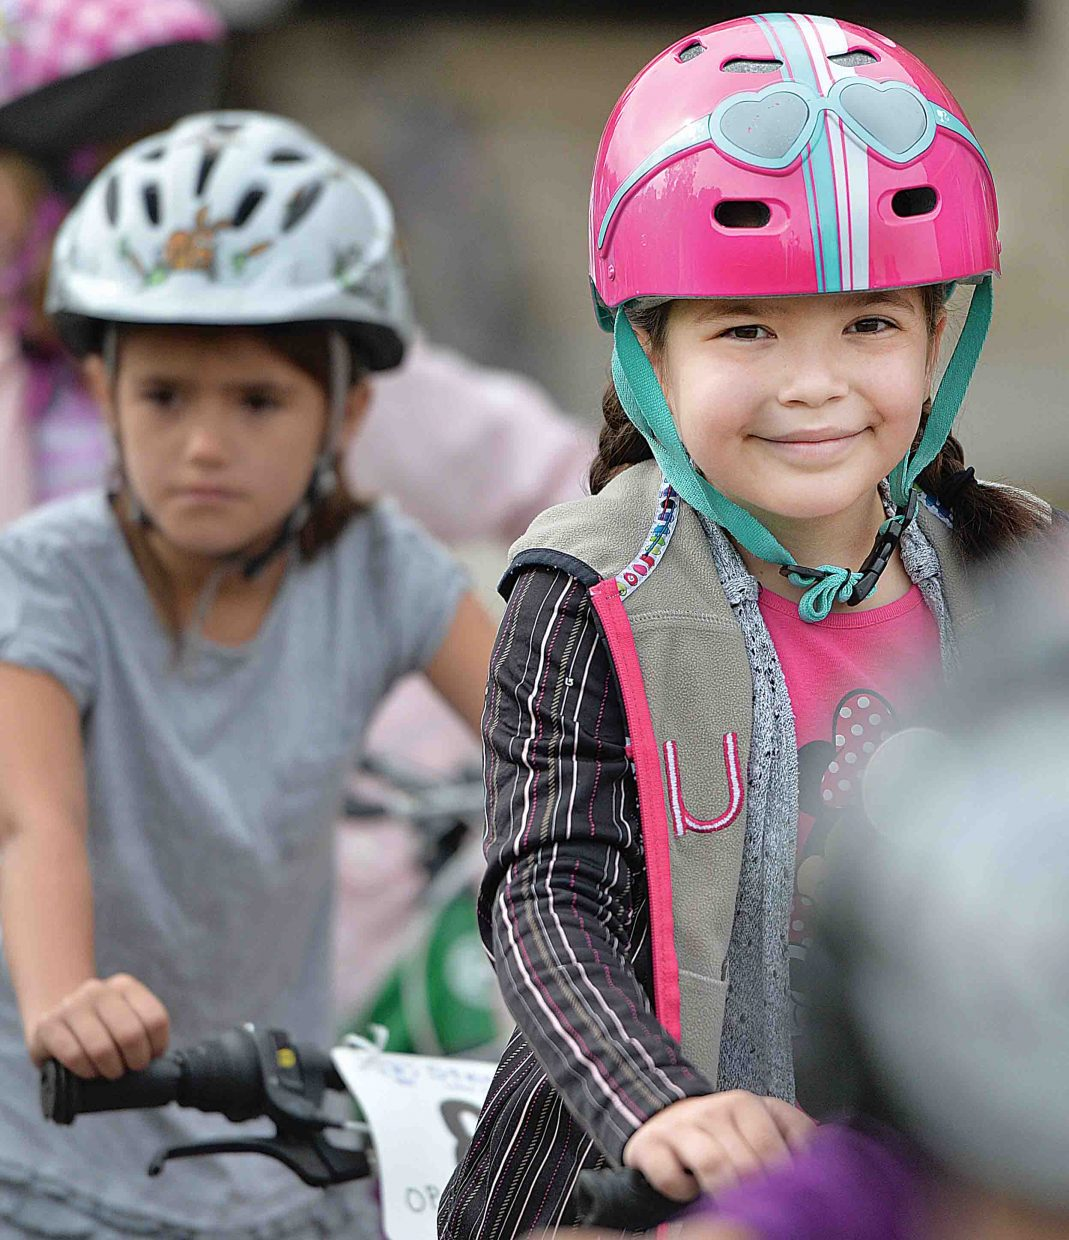 Elsa Cejudo was all smiles Friday morning as she took part in Soda Creek Elementary School's annual bike rally. The bike rally featured a number of different activities designed to teach young riders the proper and safe way to take to the roads.